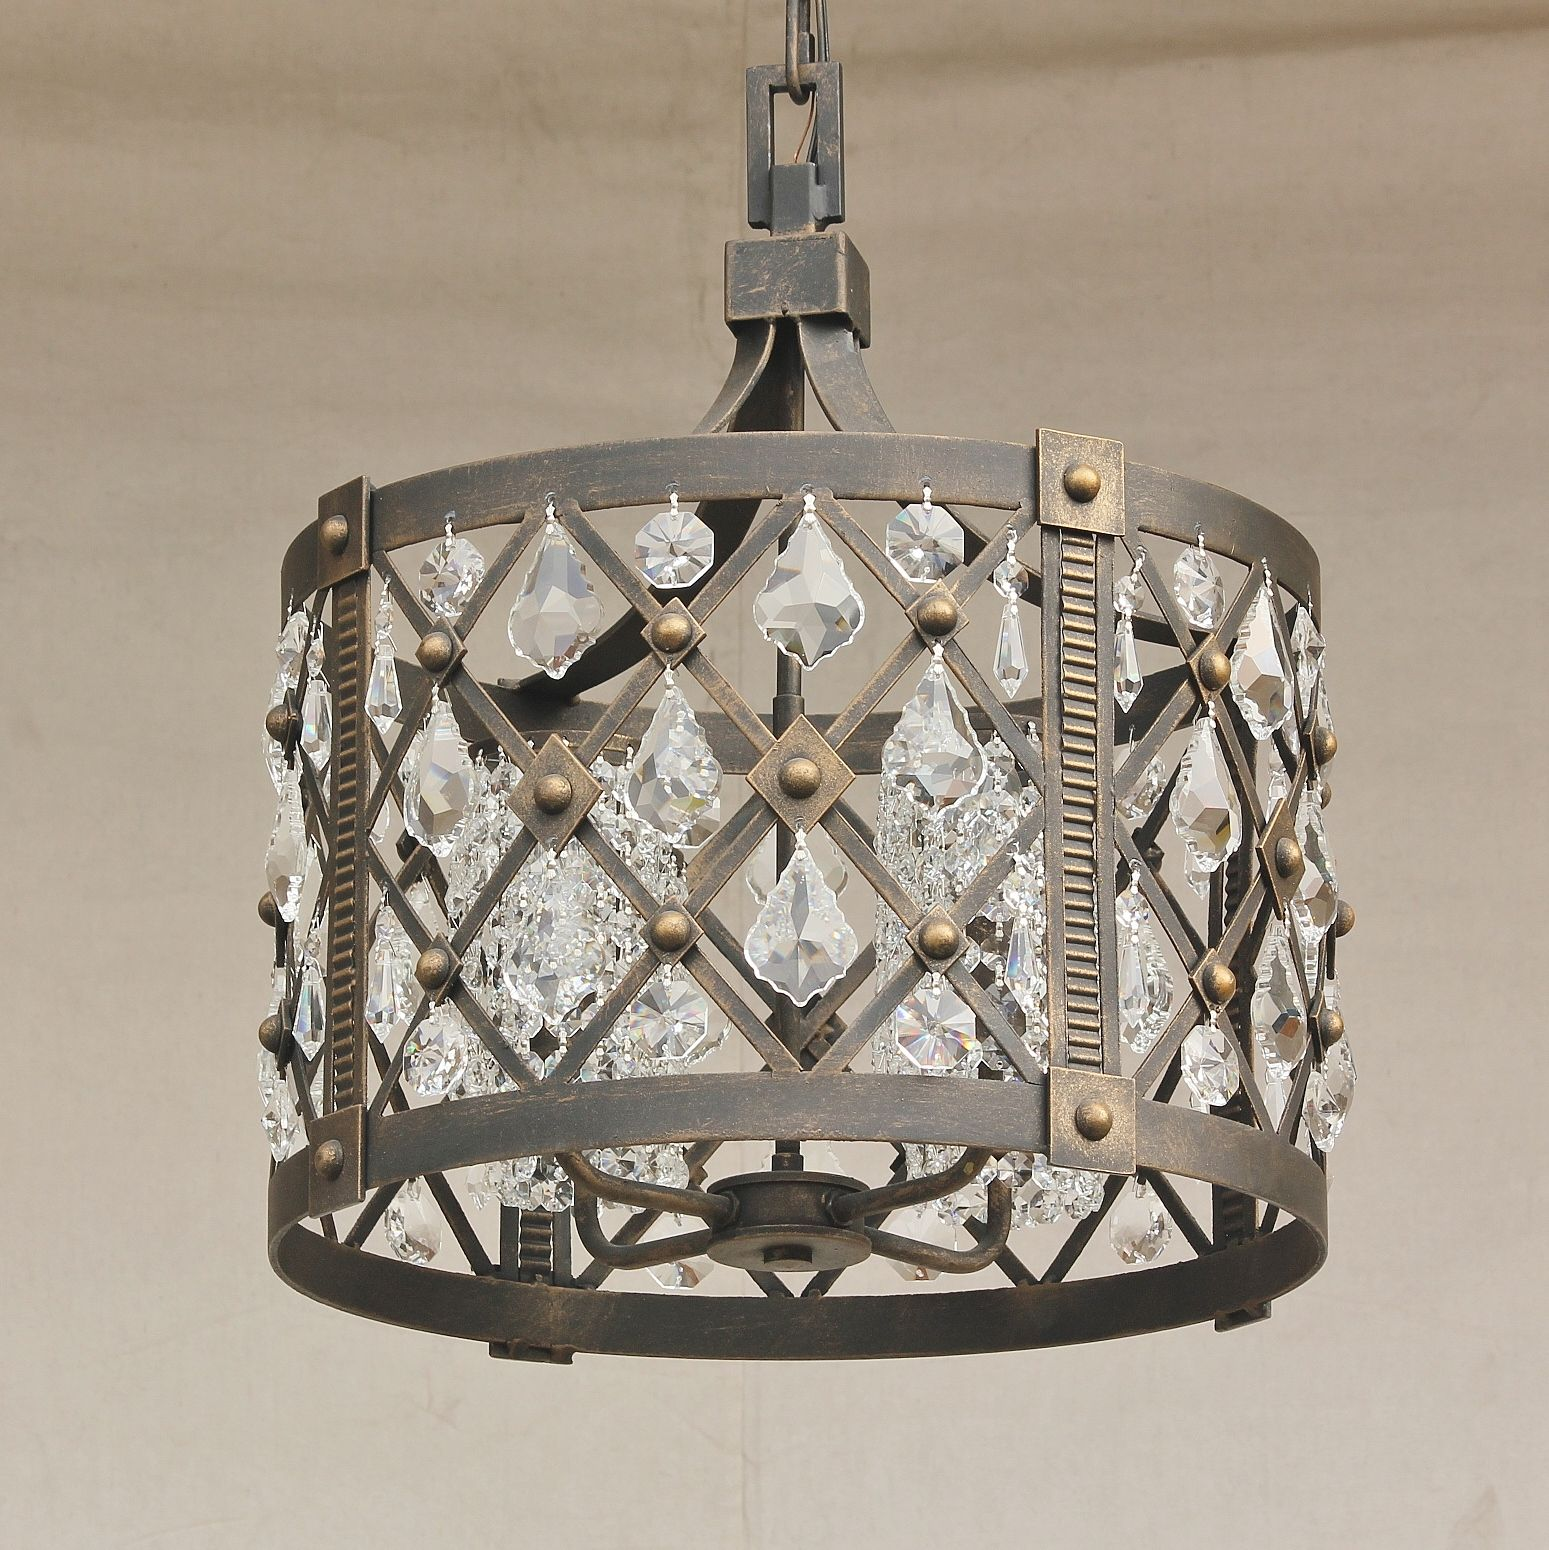 Lights Of Tuscany 8055 4 Crystal Contemporary Wrought Iron Chandelier